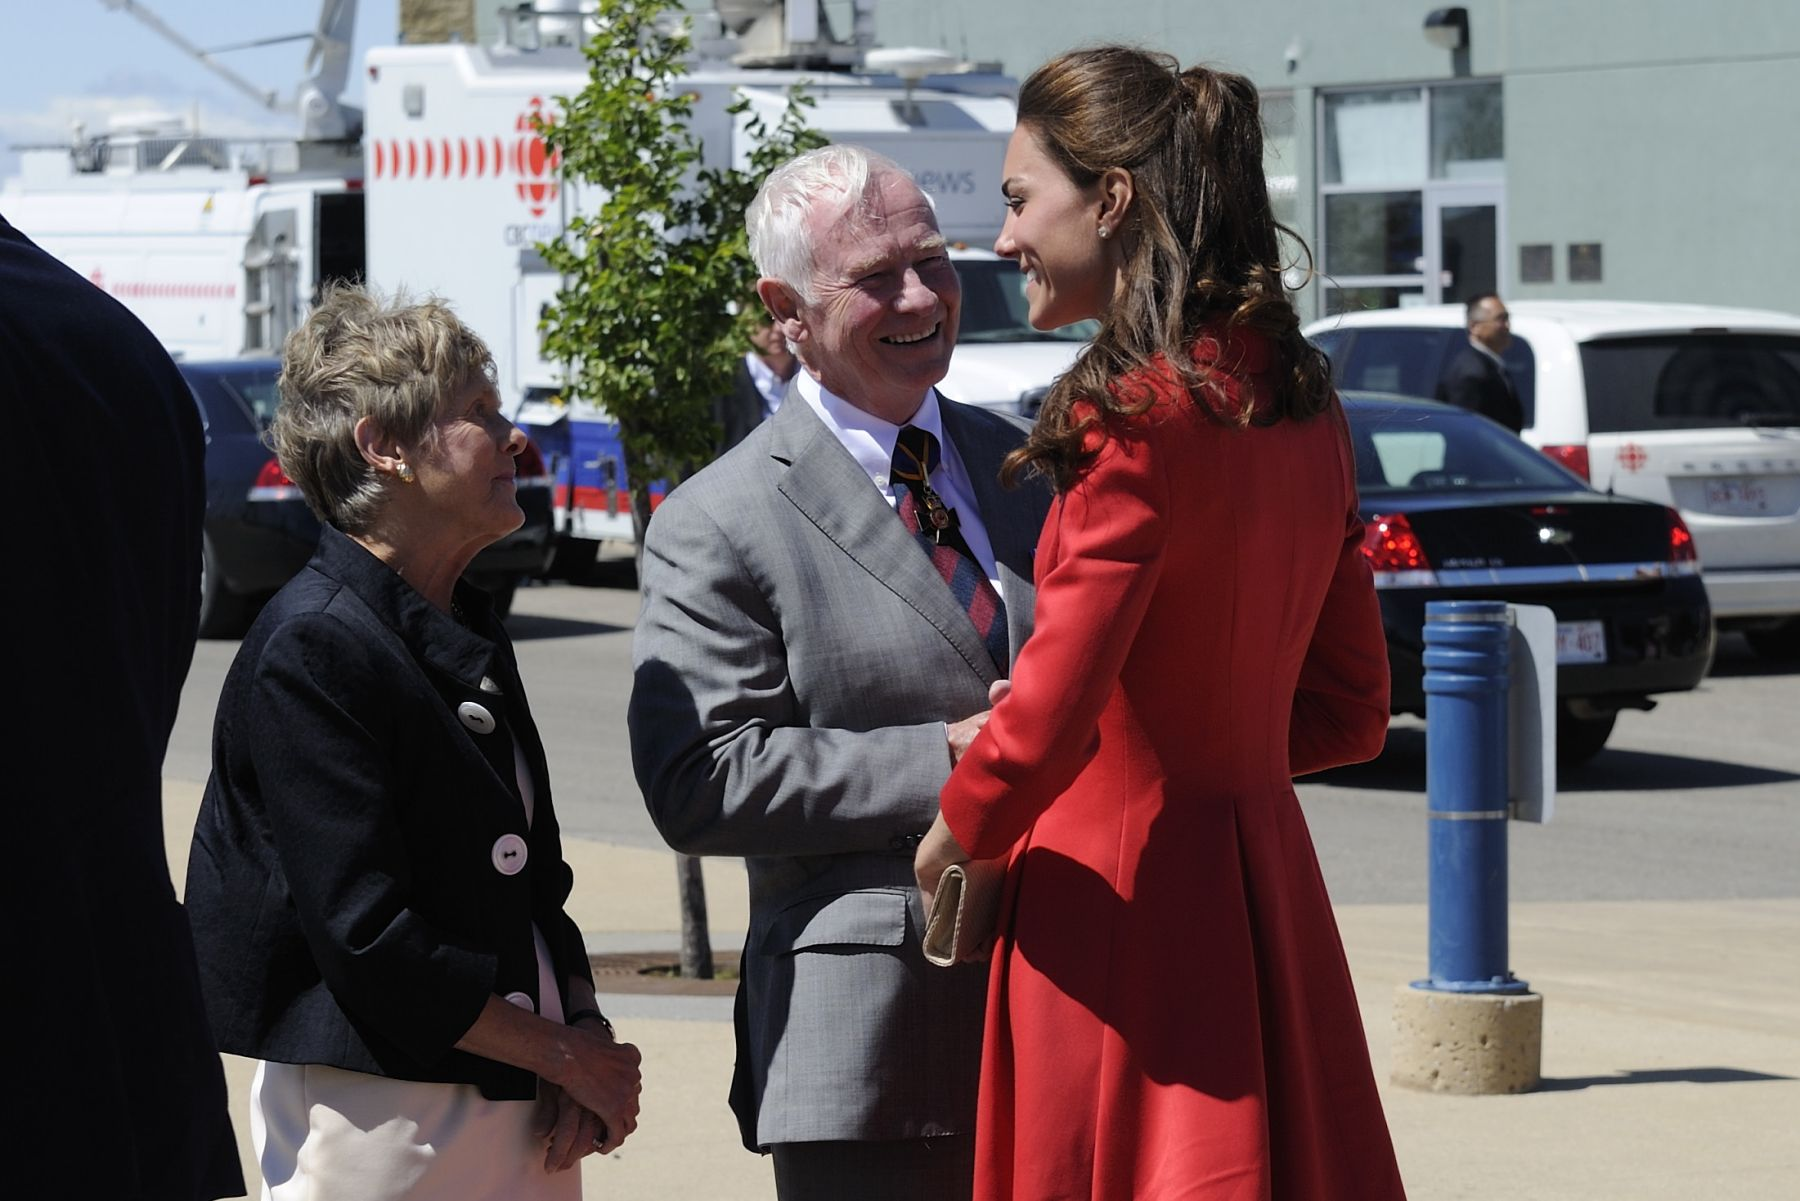 The province of Alberta and the Government of Canada hosted a ceremony to bid farewell to Their Royal Highnesses The Duke and Duchess of Cambridge. Their Excellencies the Right Honourable David Johnston, Governor General of Canada, and Mrs. Sharon Johnston attended the ceremony which took place at Calgary Rotary Challenger Park.